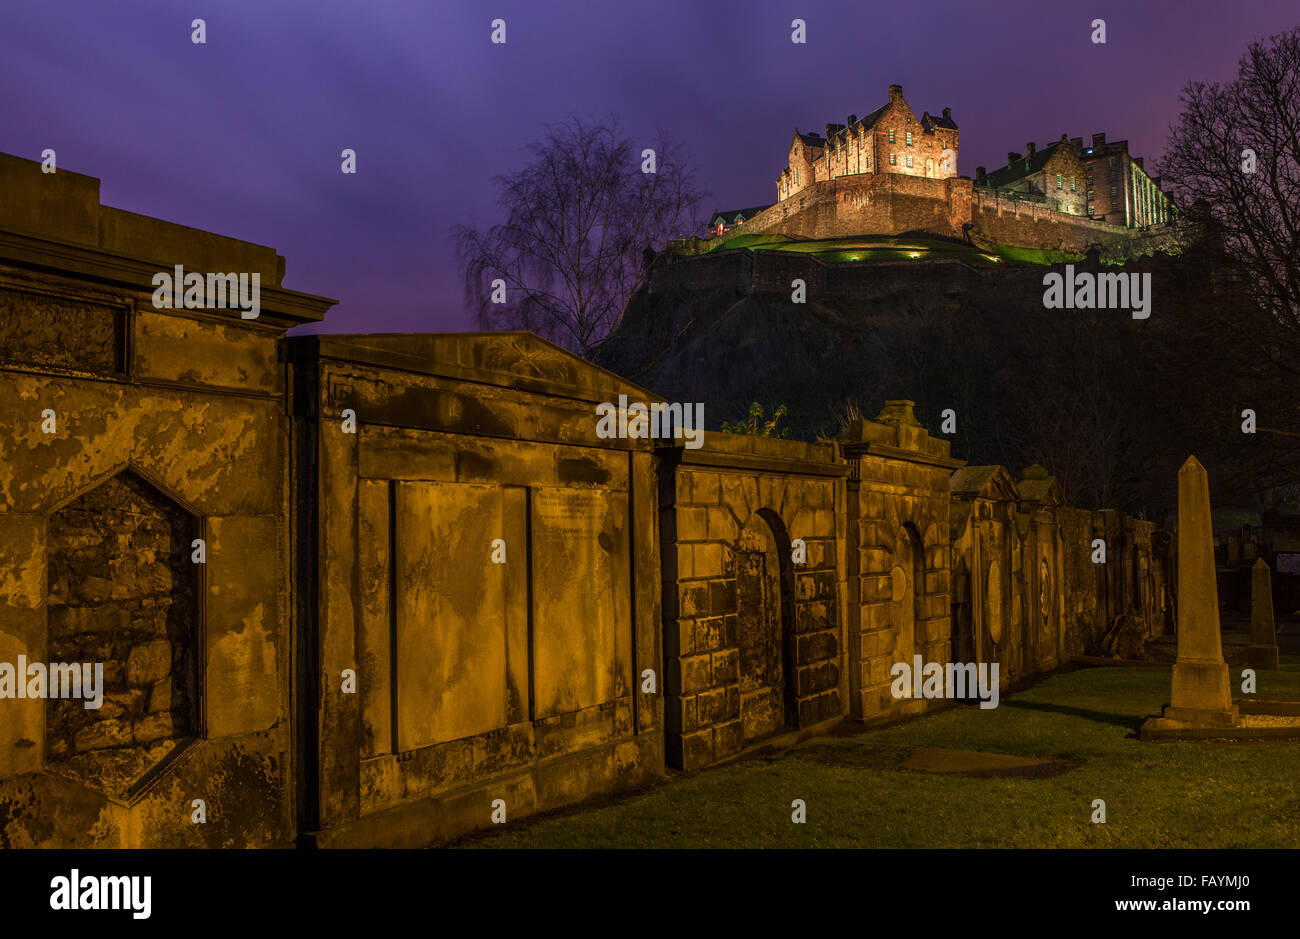 A stunning view of Edinburgh Castle from a Churchyard, Scotland. - Stock Image